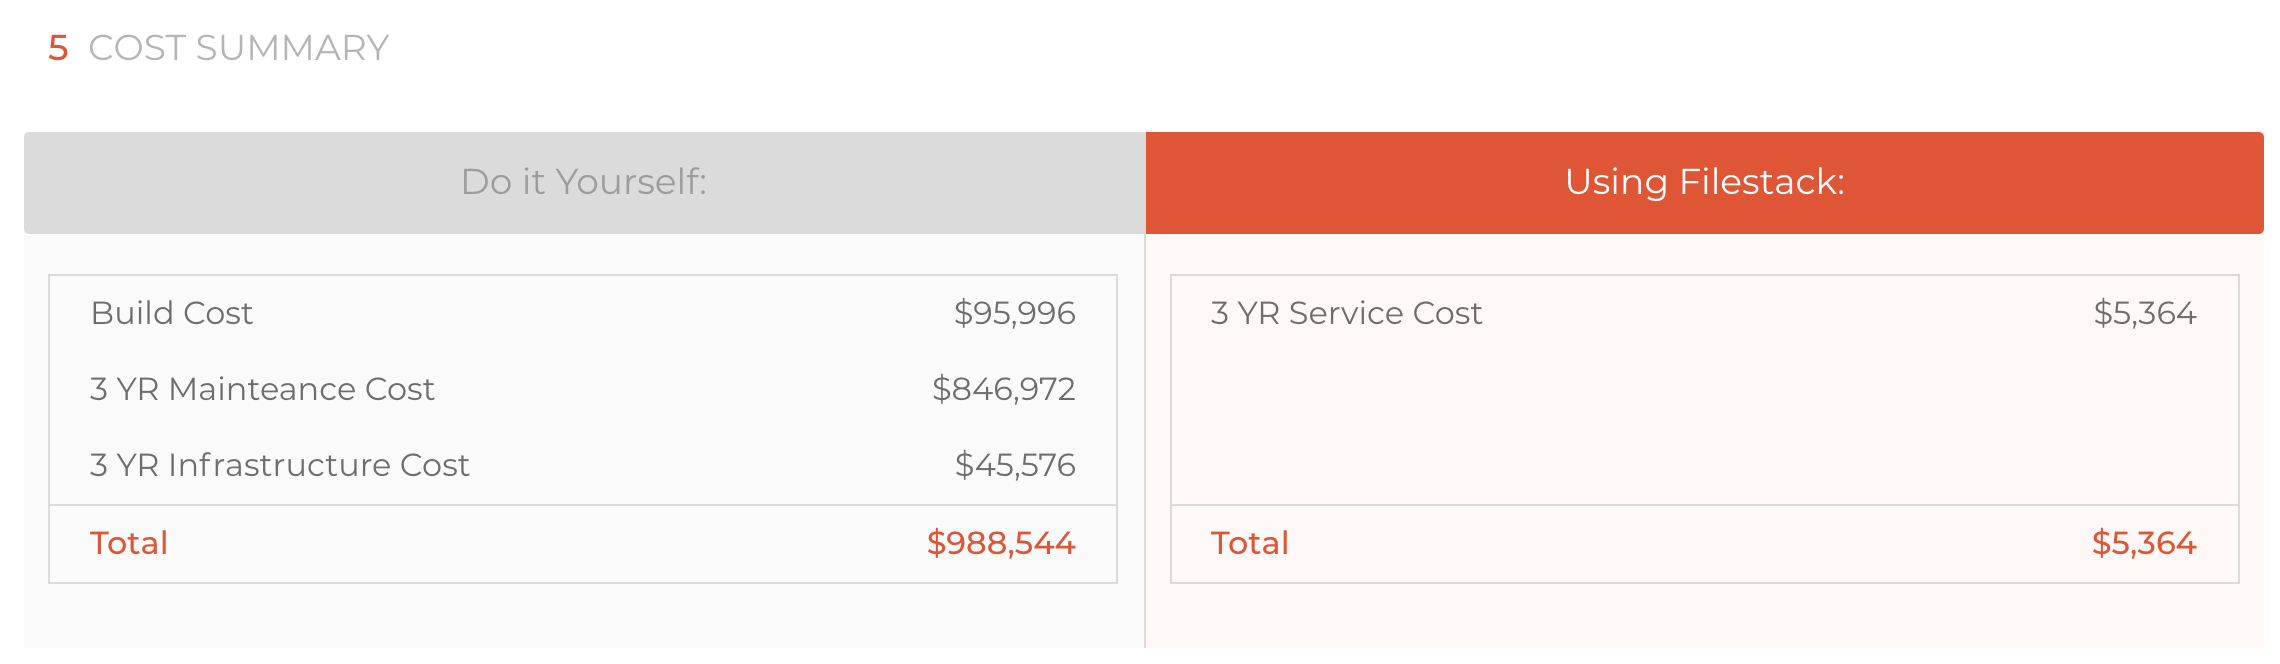 An example of the Filestack ROI Calculator